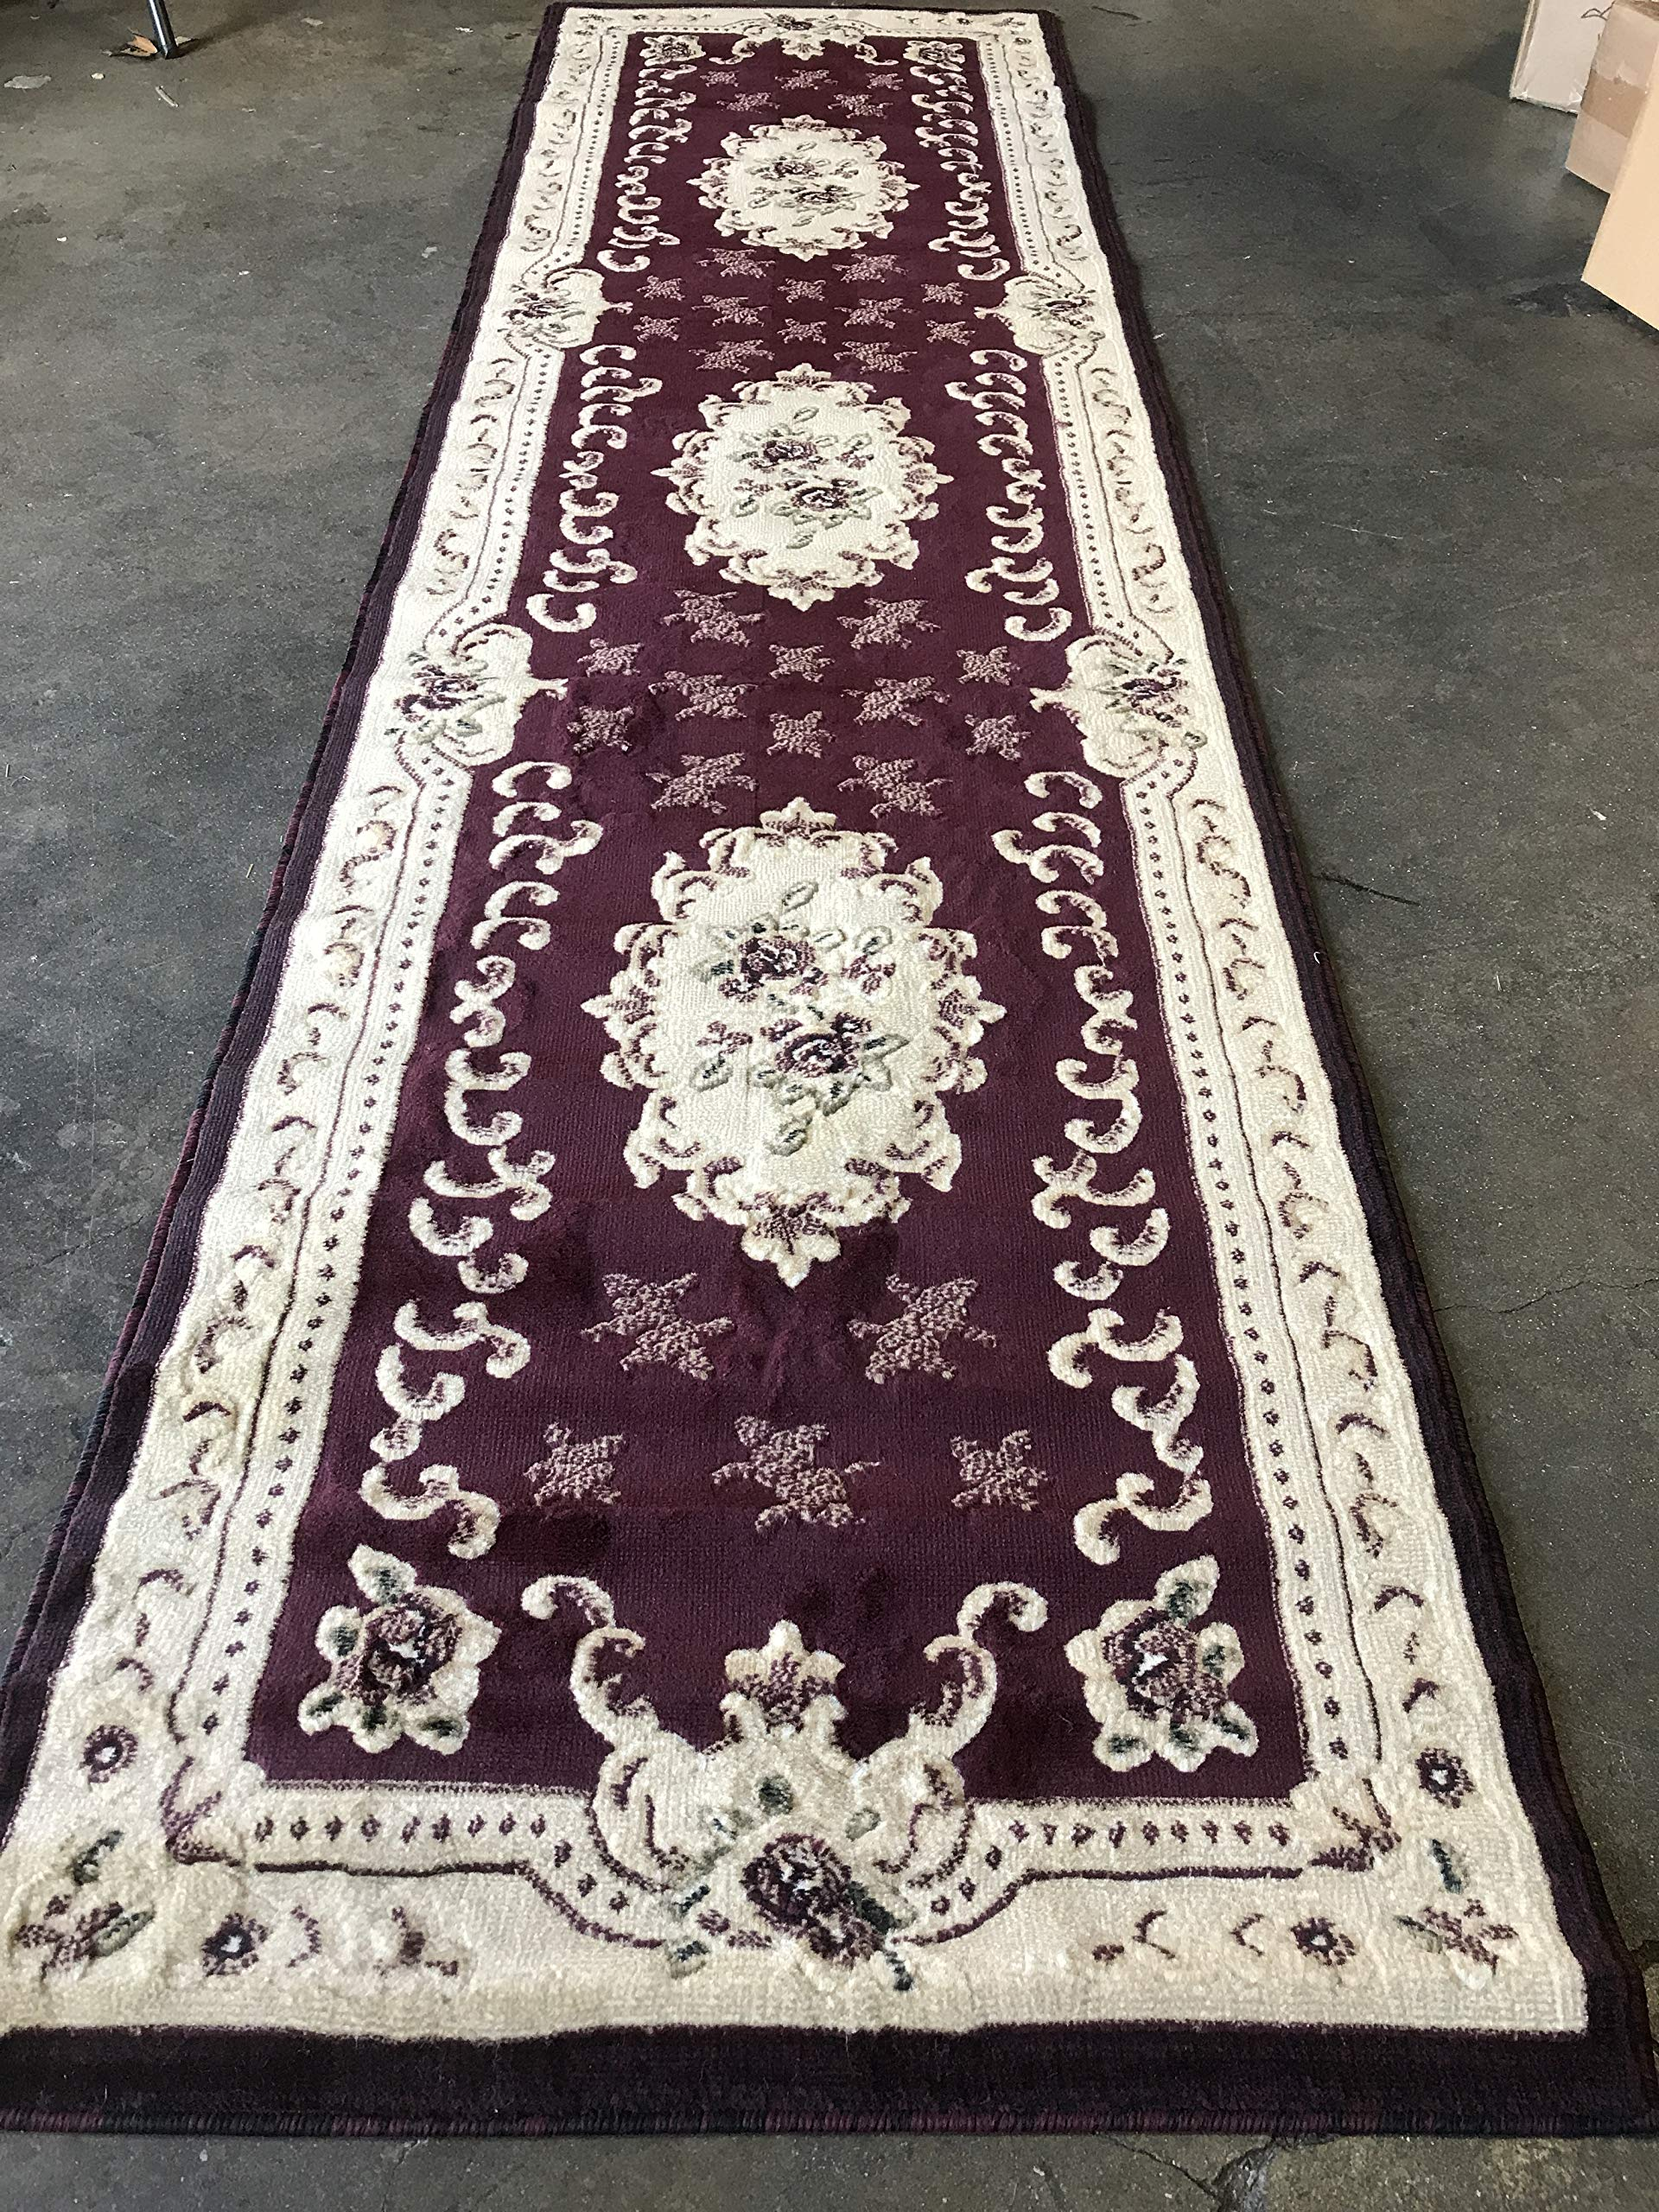 emirates Traditional Long Aubusson Persian Floral Runner Rug Burgundy Green Beige Ivory Design 507 (31 Inch X 15 Feet 8 Inch) - Traditional Long Aubusson Persian Floral Runner Rug Burgundy Green Beige Ivory Design 507 (31 Inch X 15 Feet 8 Inch) Quality textured Aubusson design with Burgundy ,green,beige, and ivory. Easy to clean,(stain resistant and soil proof) very durable. - runner-rugs, entryway-furniture-decor, entryway-laundry-room - A1STV BEcpL -